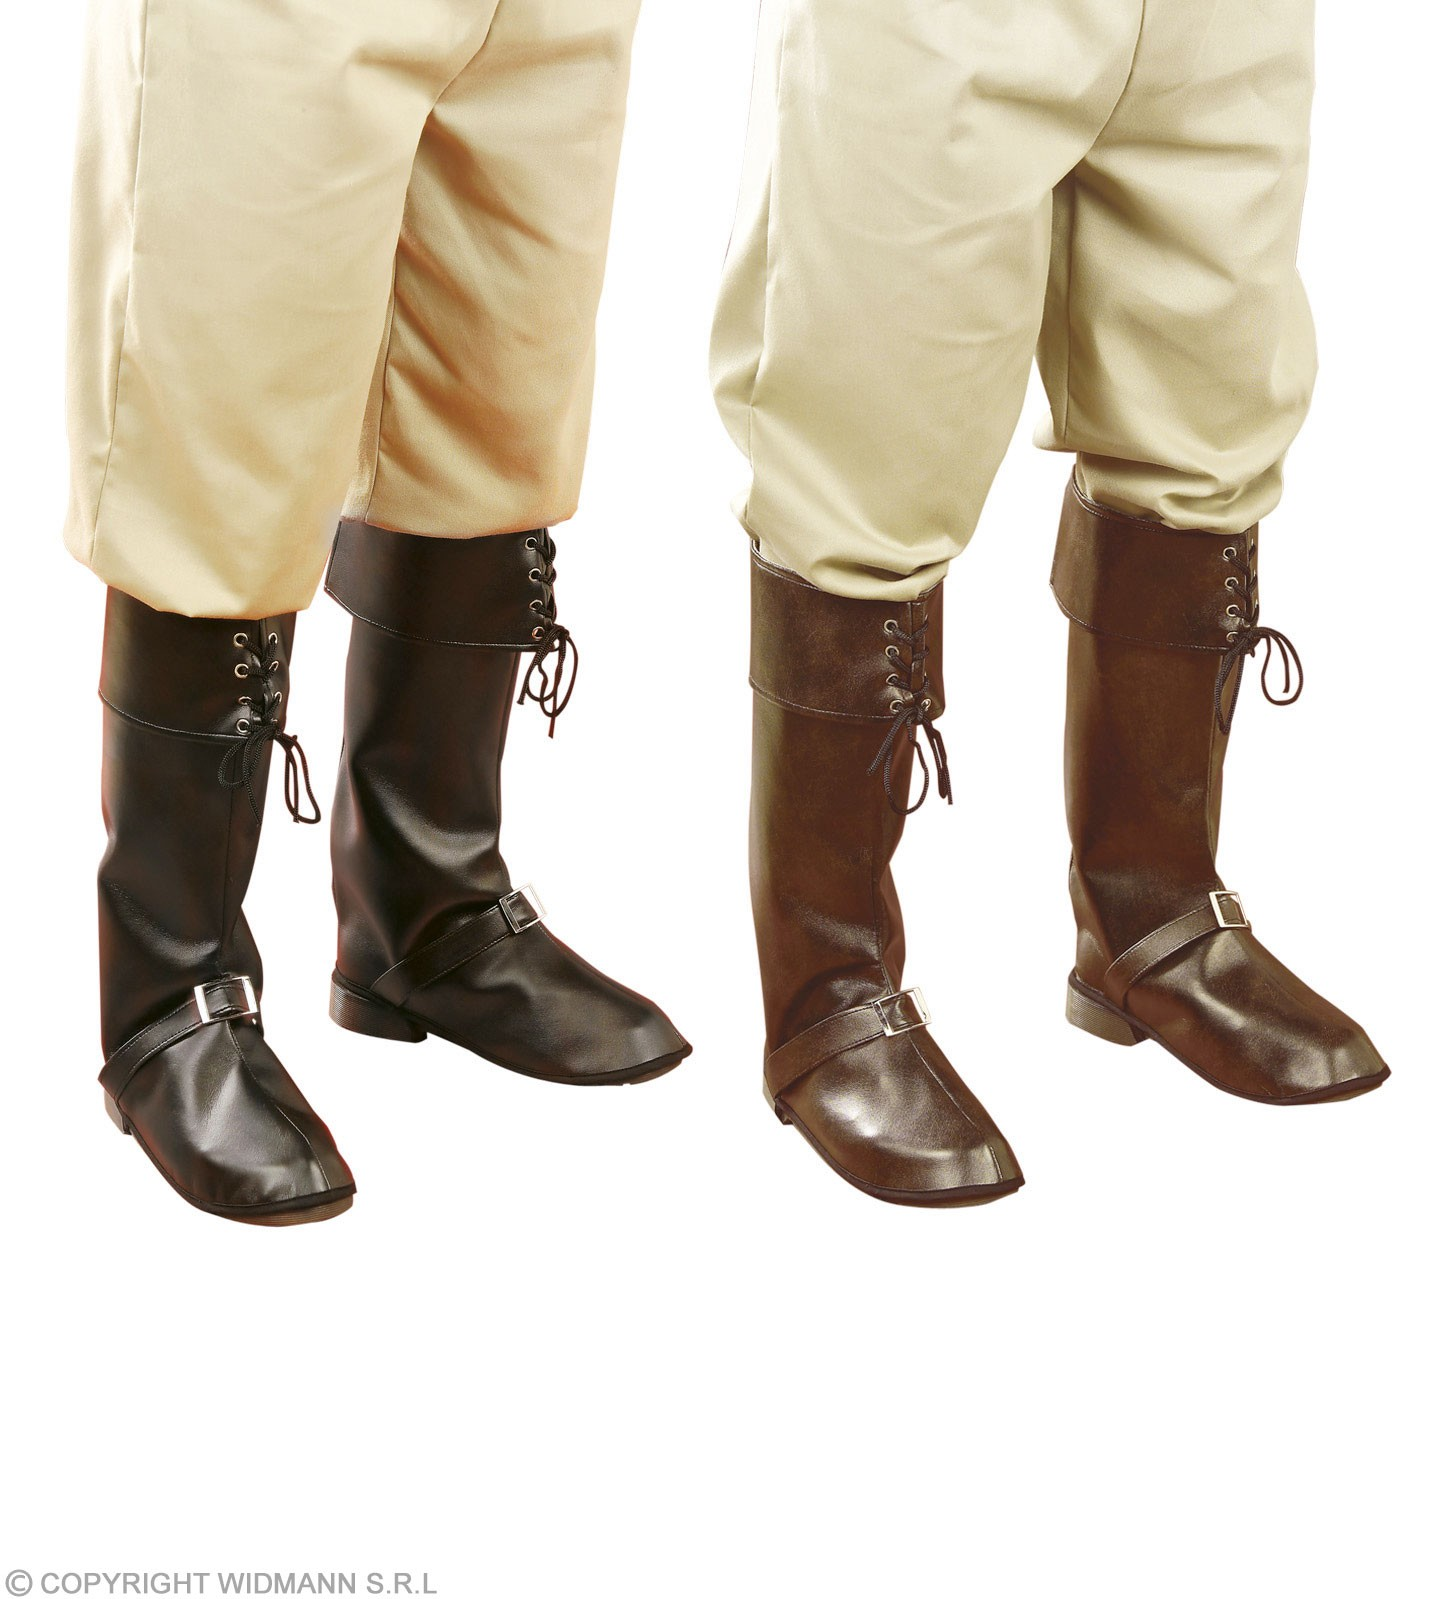 Boot Covers W/Buckle Black/Brown - Fancy Dress